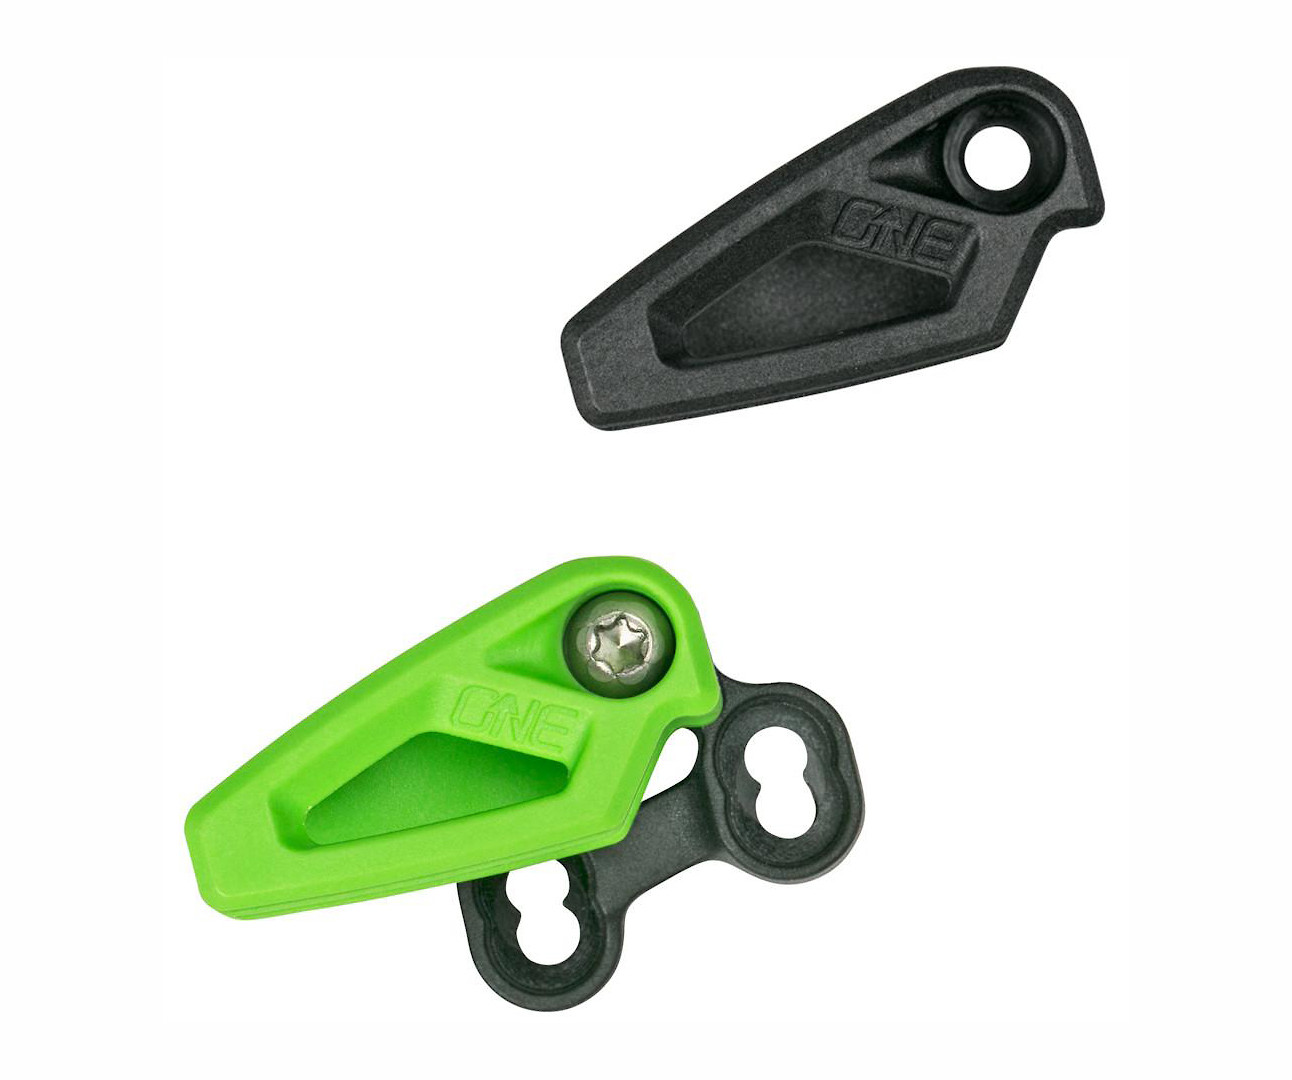 OneUpComponents S3 Guide, Black and Green Bird